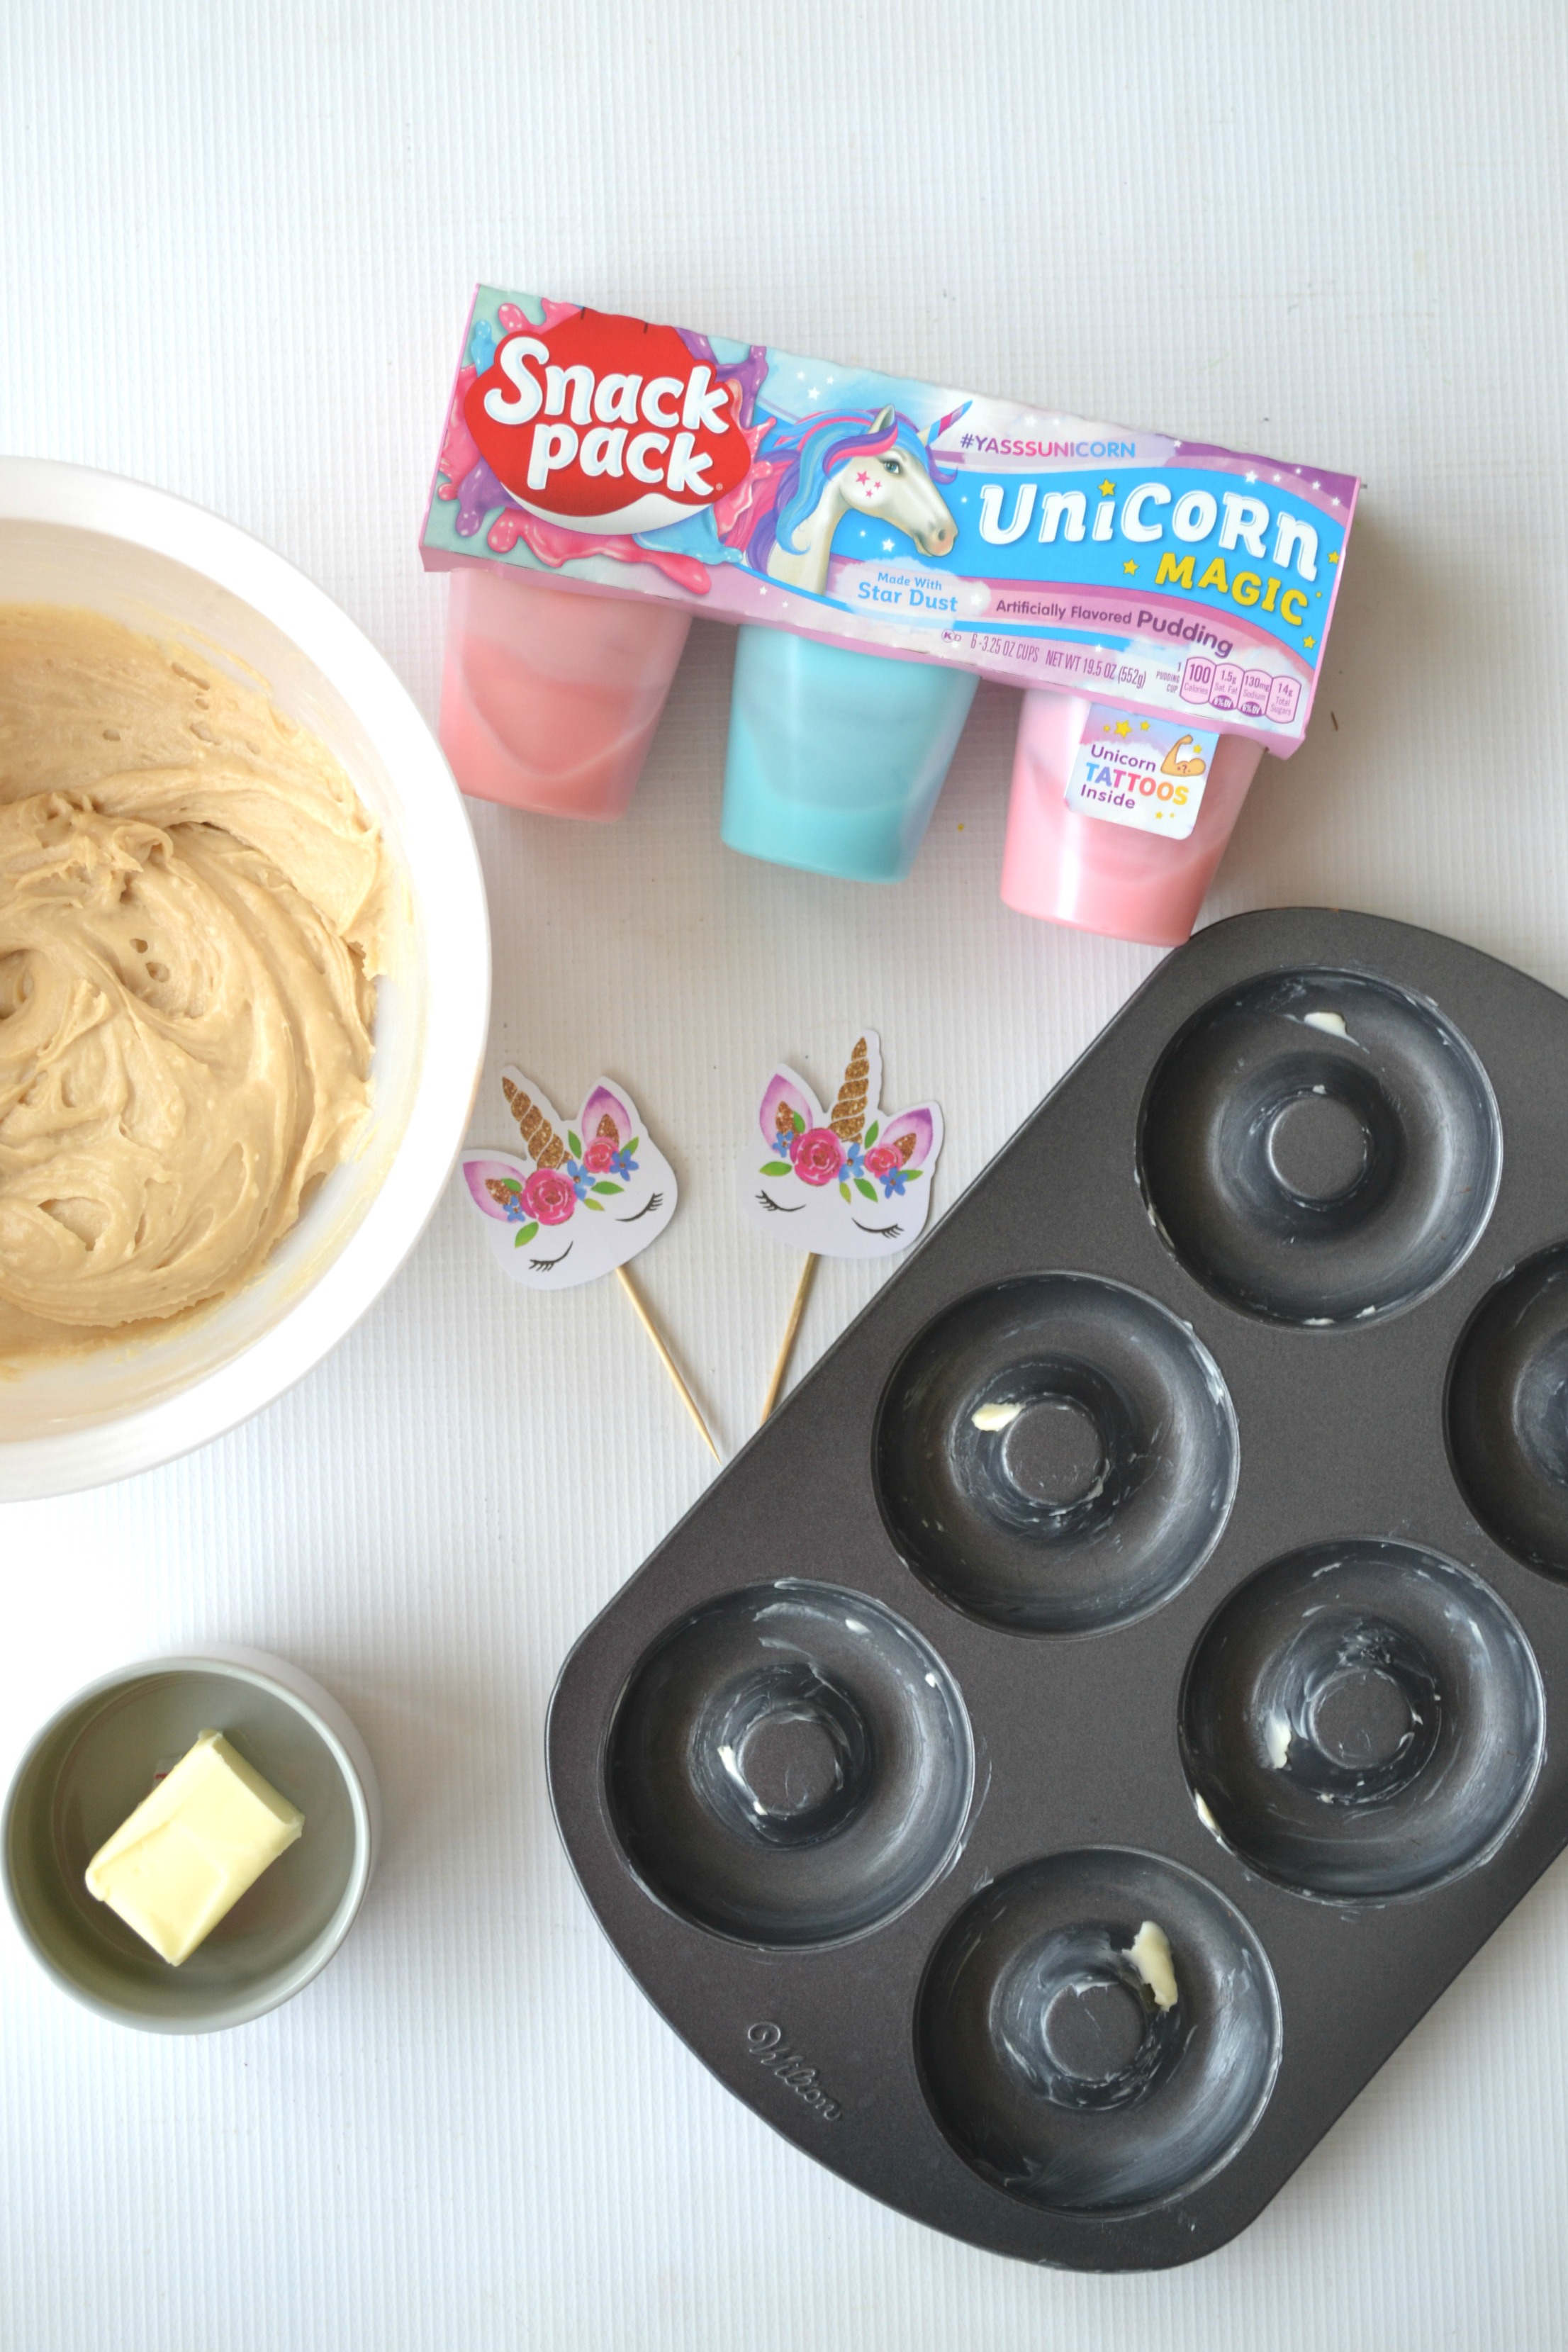 Enchanted Unicorn Doughnuts - a spectacularly sweet treat to pair with Unicorn Snack Packs to spark a little mystical and magical fun into anyone's day! #UnicornSnackPack #YasssUnicorn #UnicornMagic #ad